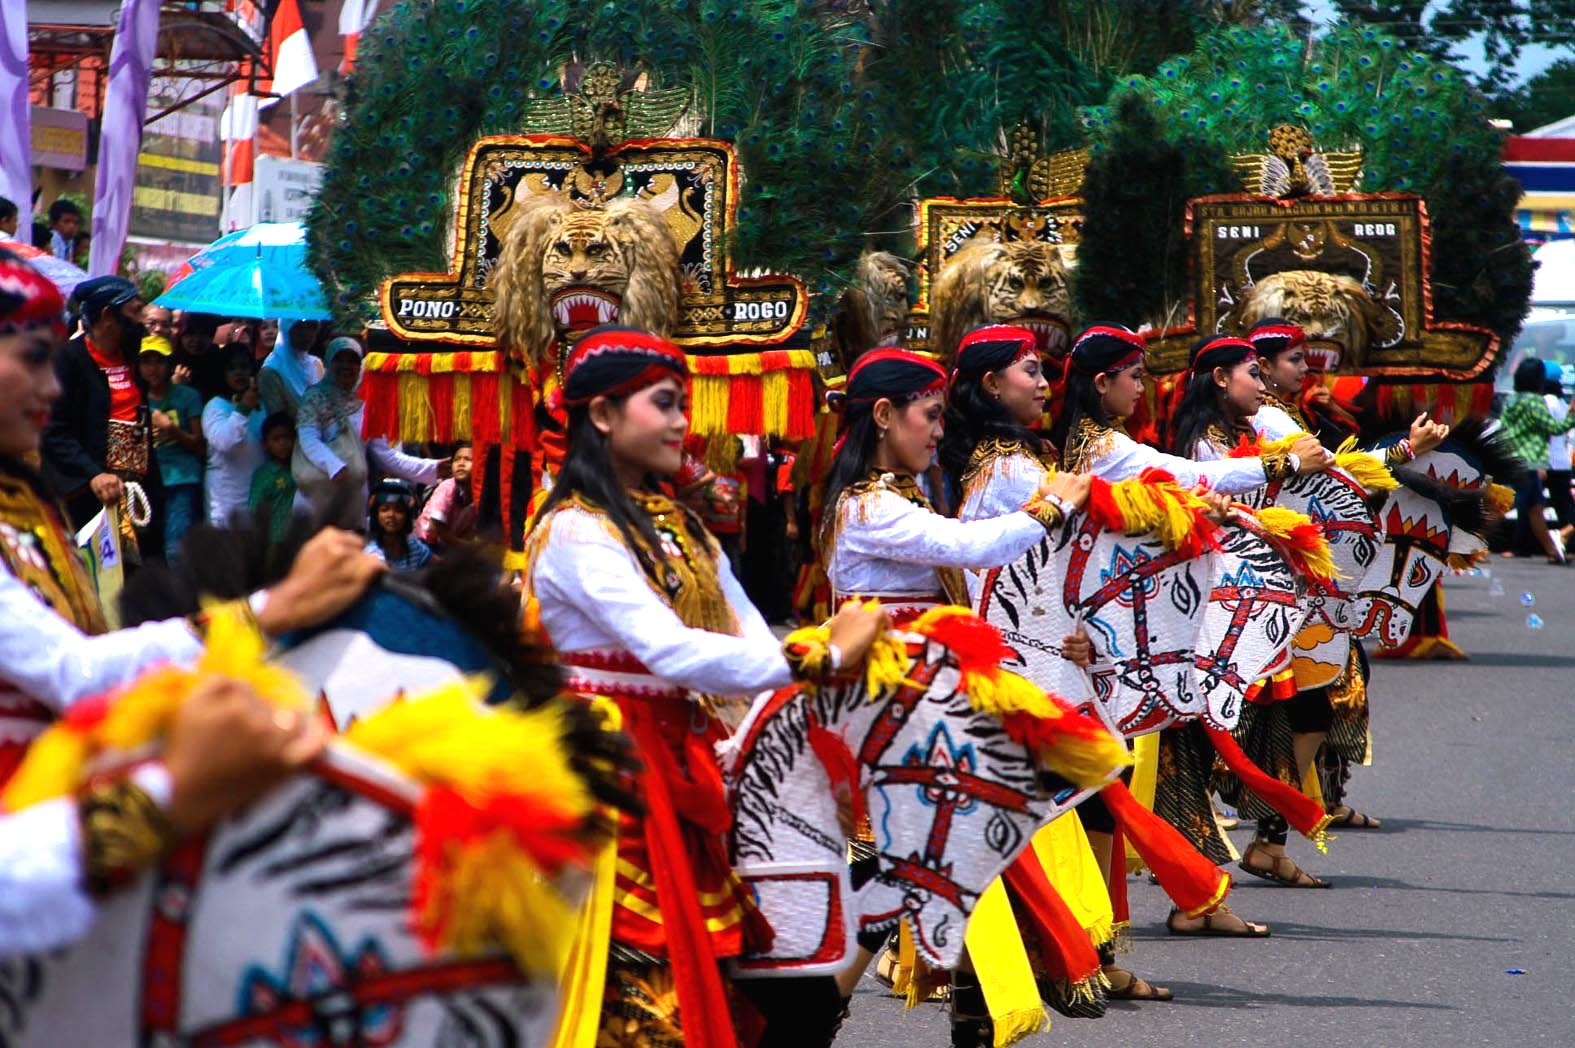 Reog Ponorogo Indonesian Culture And Tradition